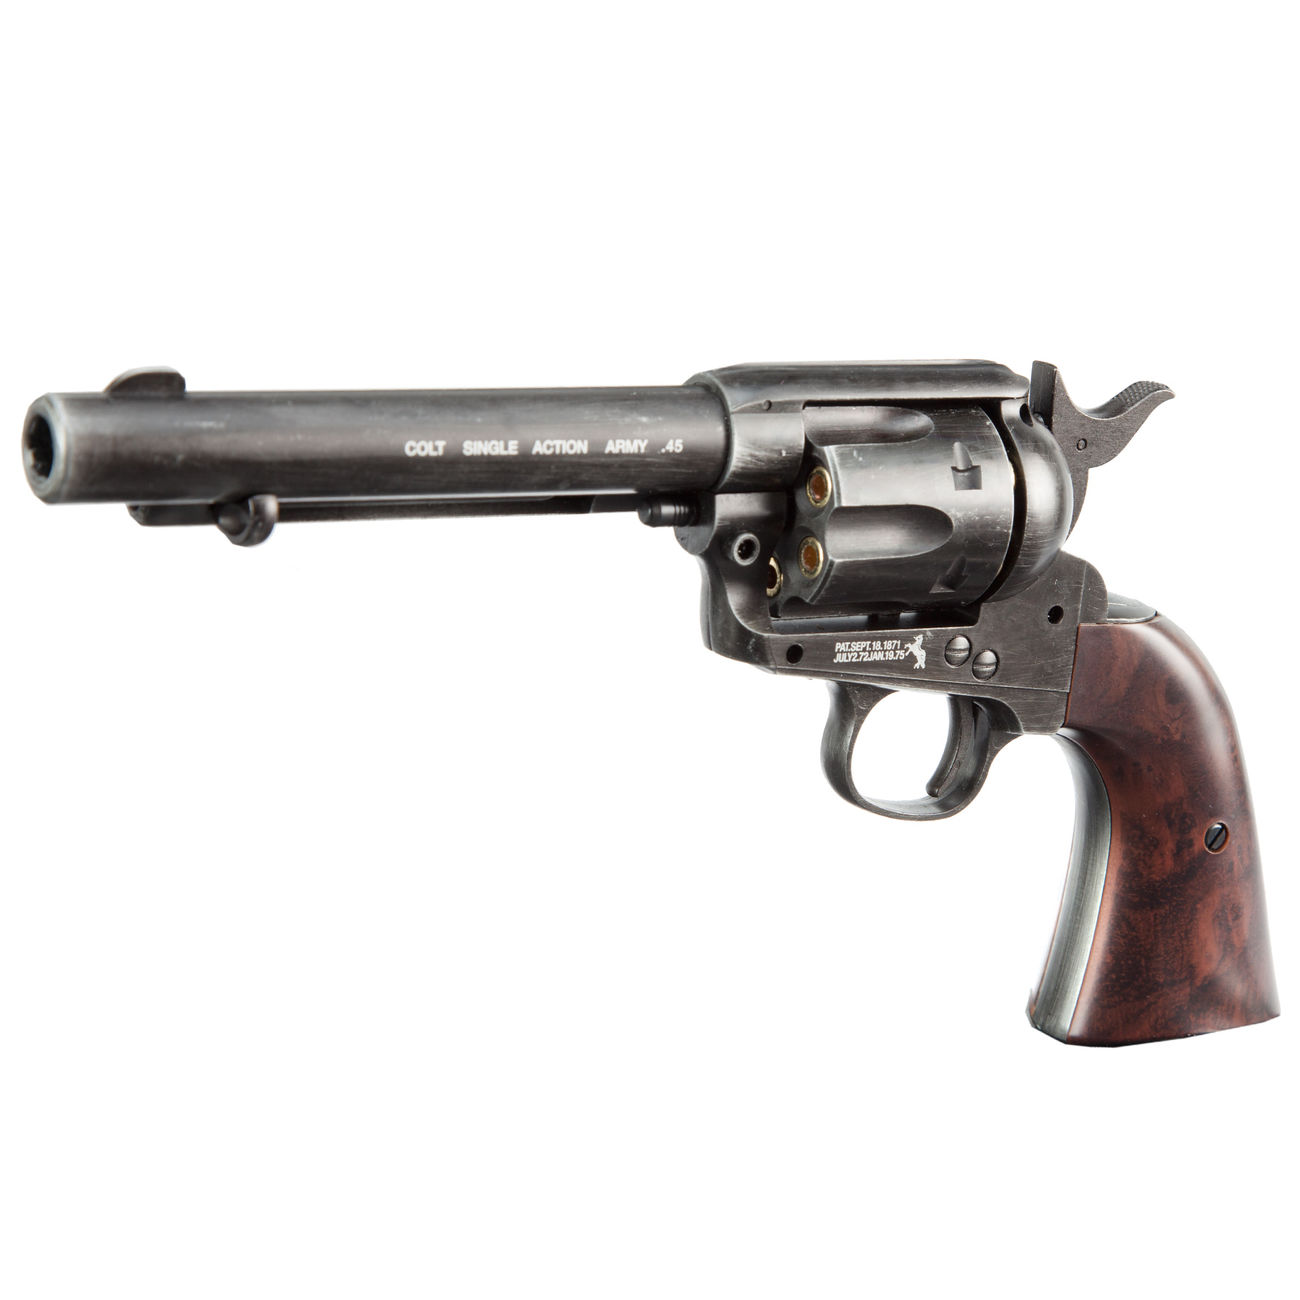 Colt Single Action Army 45 antik CO2 Revolver 4,5mm BB 1